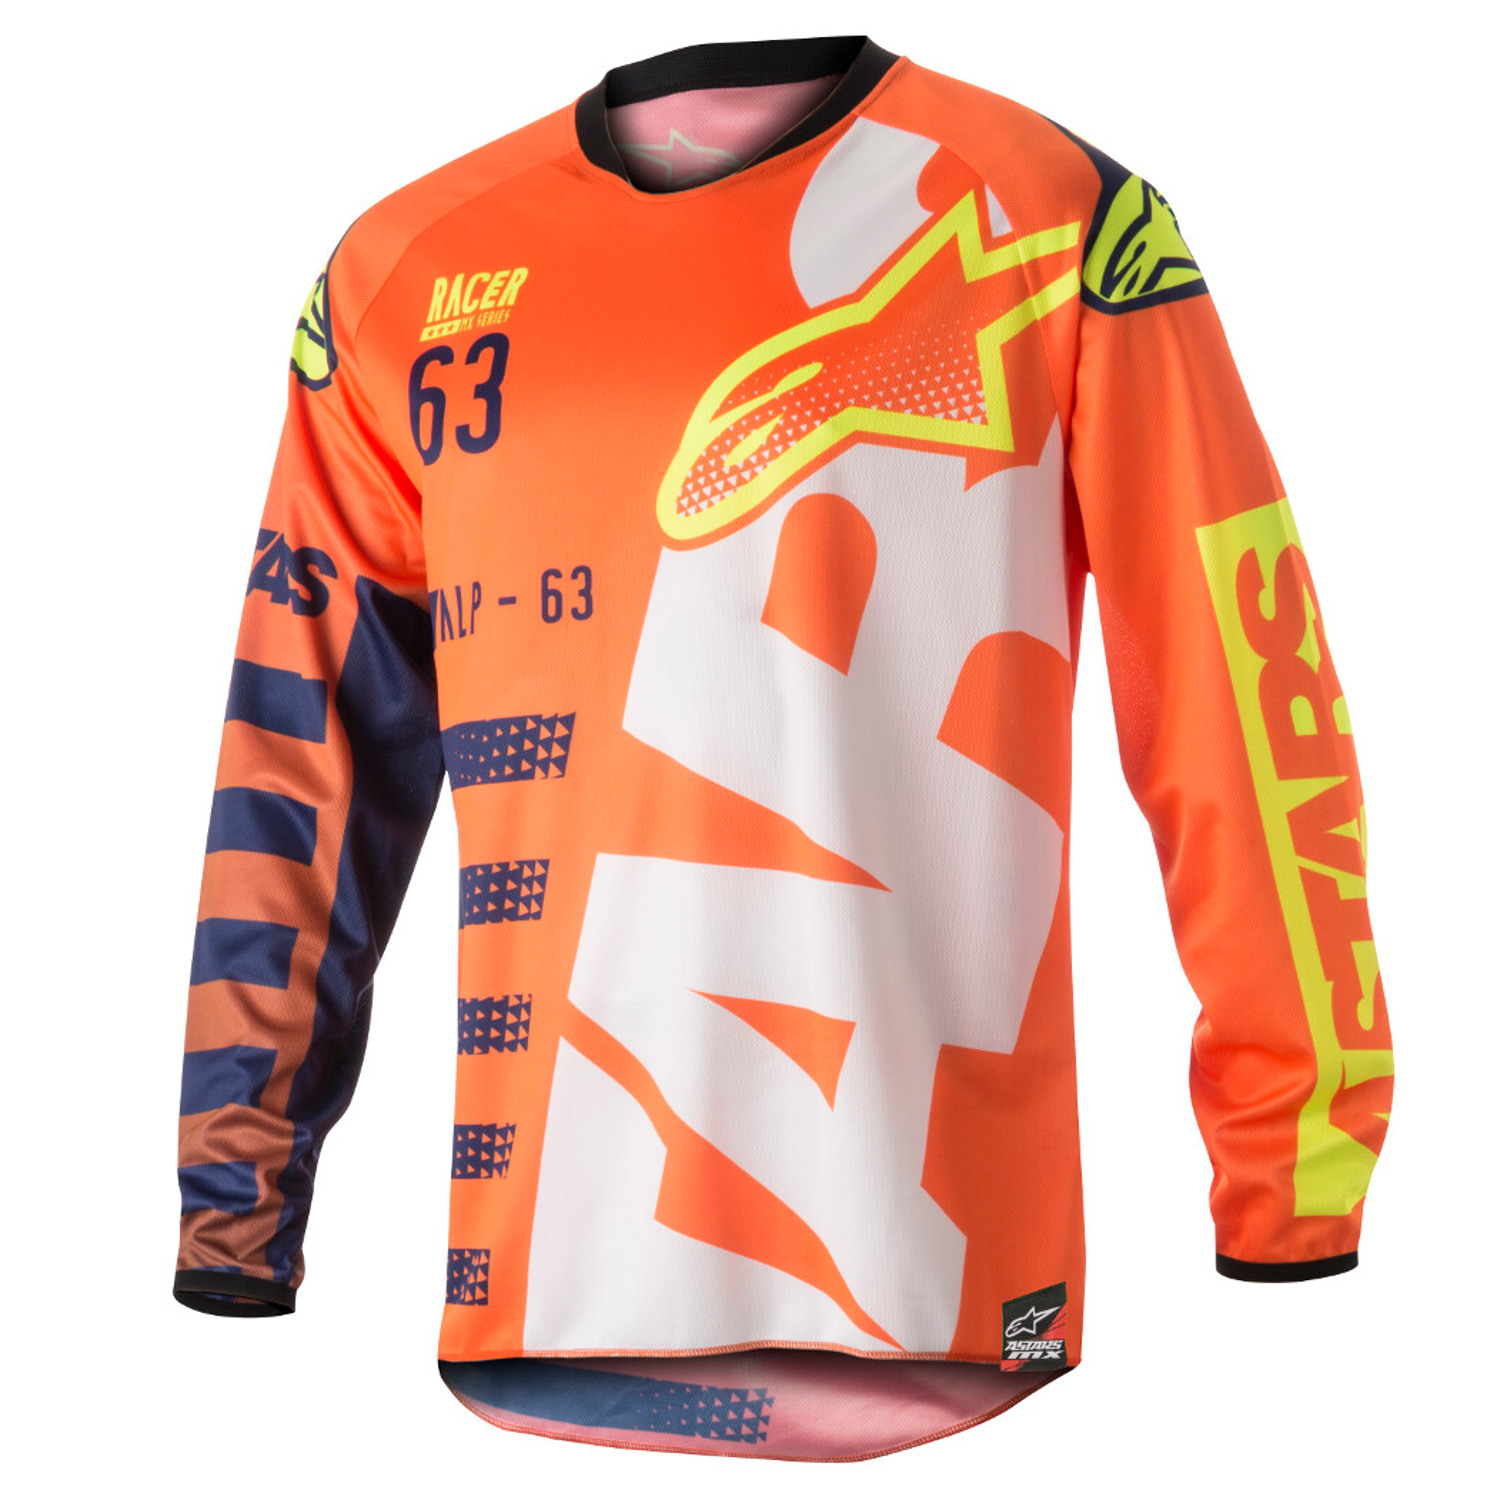 Alpinestars-Kids-Jersey-Racer-Braap-Fluo-Orange-Dunkelblau-Weiss